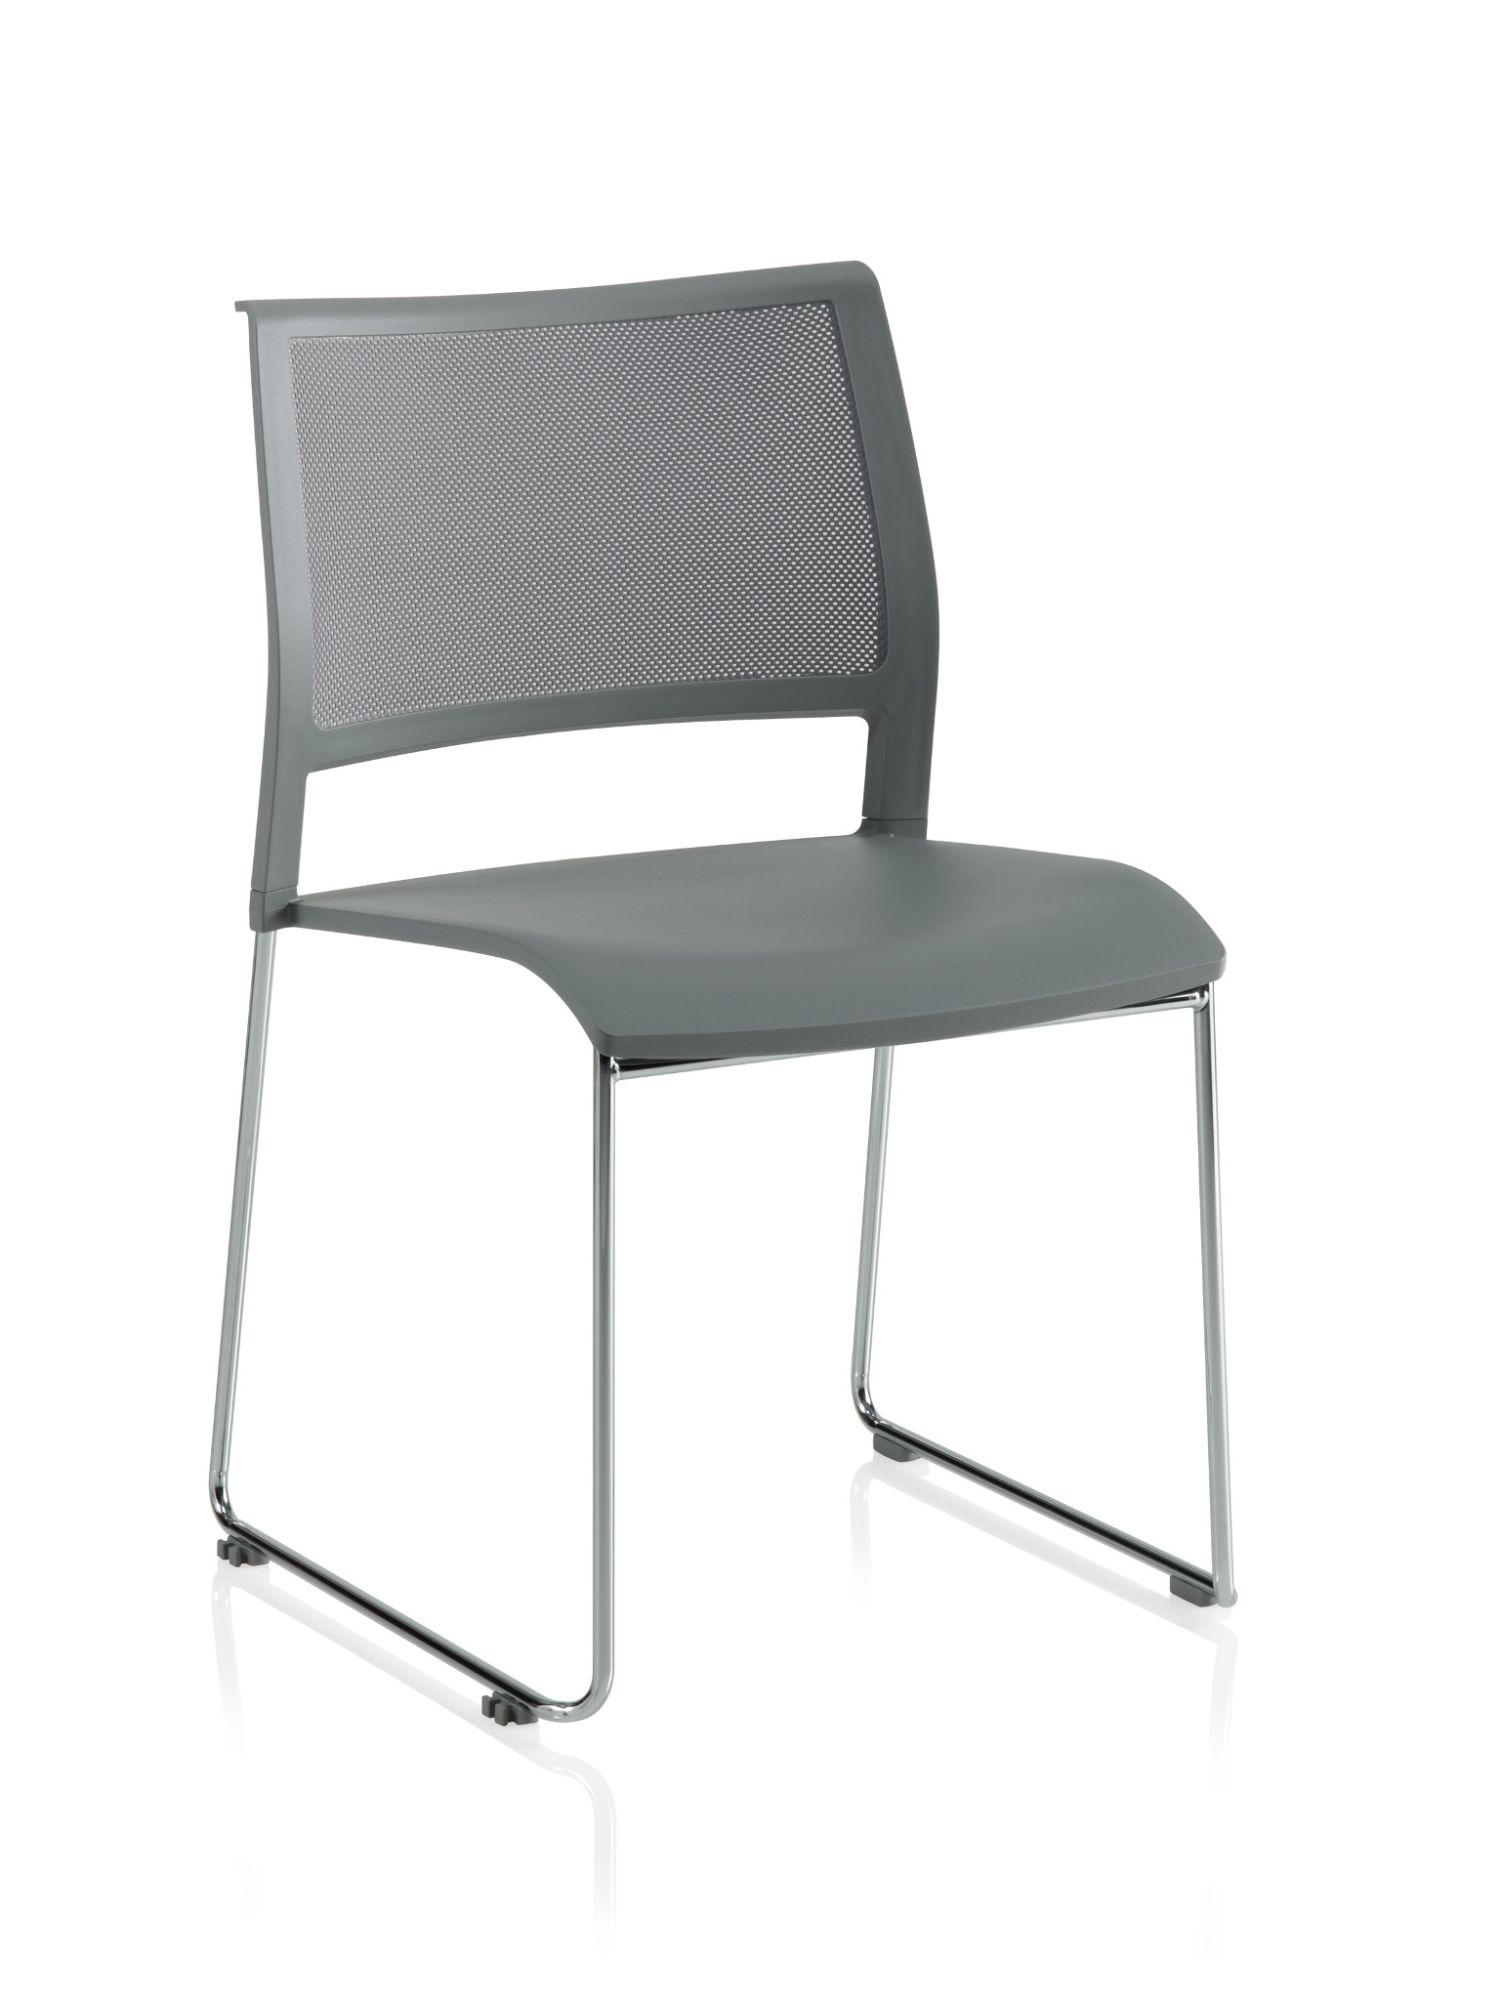 stone grey opt4 sled base chair